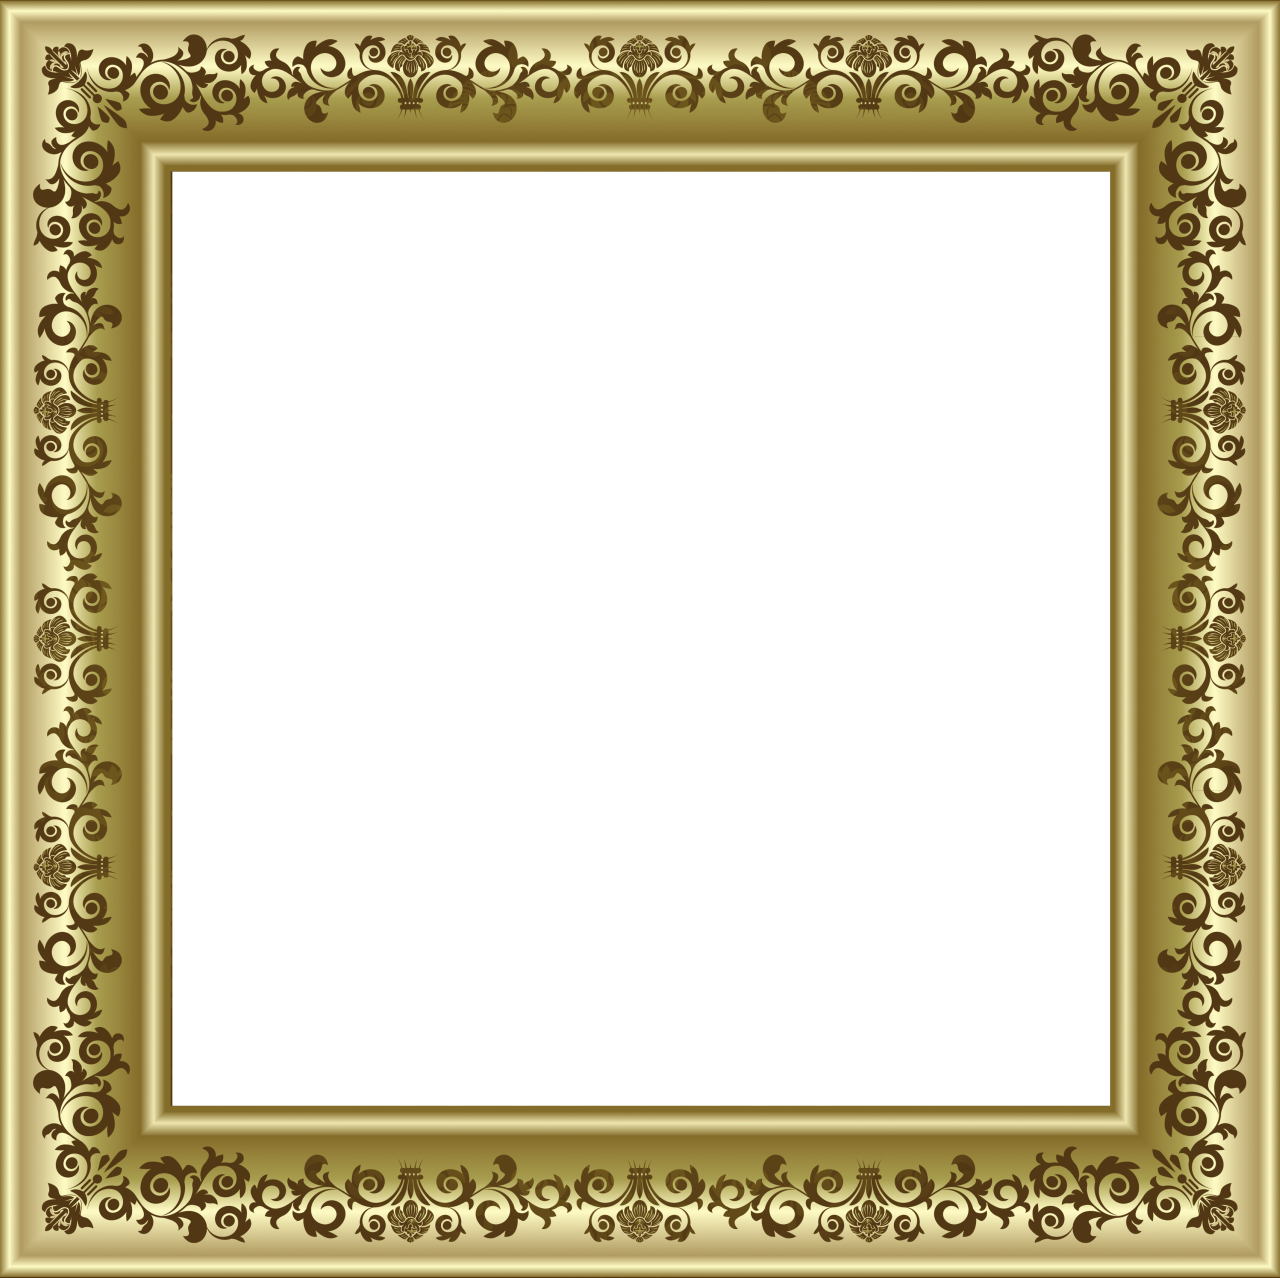 Gold photo frame png. With brown ornaments frames